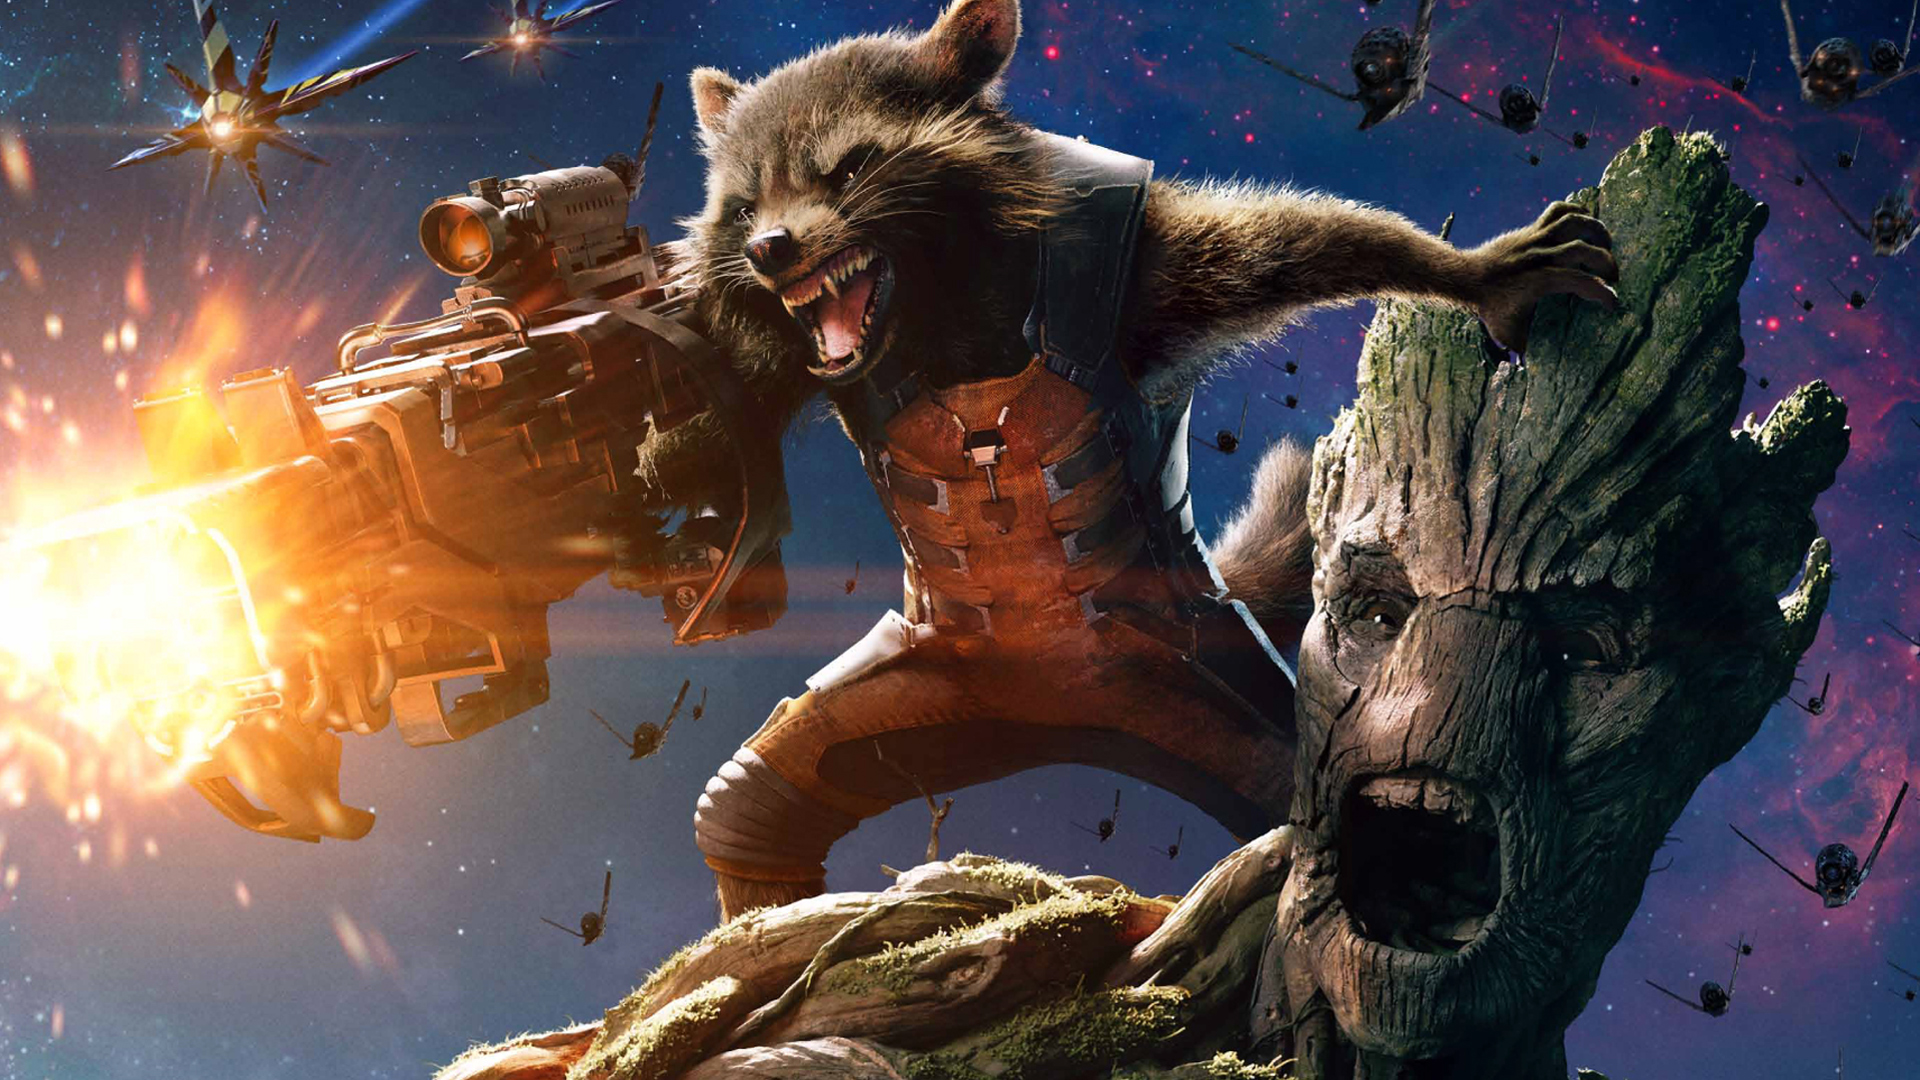 Star Lord And Rocket Raccoon By Timothygreenii On Deviantart: Groot And Rocket Wallpaper